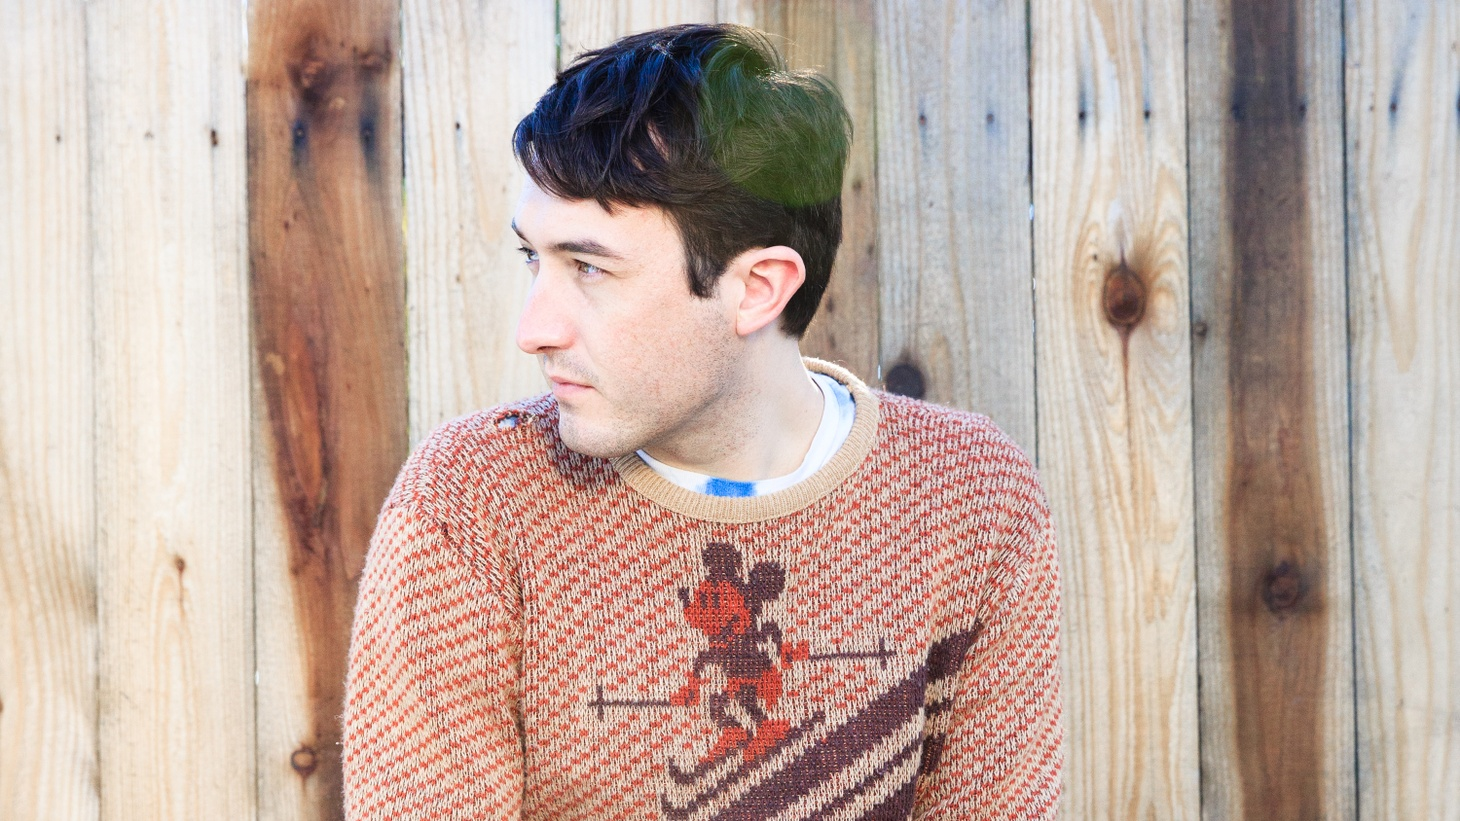 Laguna Beach native Mikal Cronin packs his third album, MCIII,with a handful of garage-rock driven pop songs, as well as lush arrangements and stunning melodies.